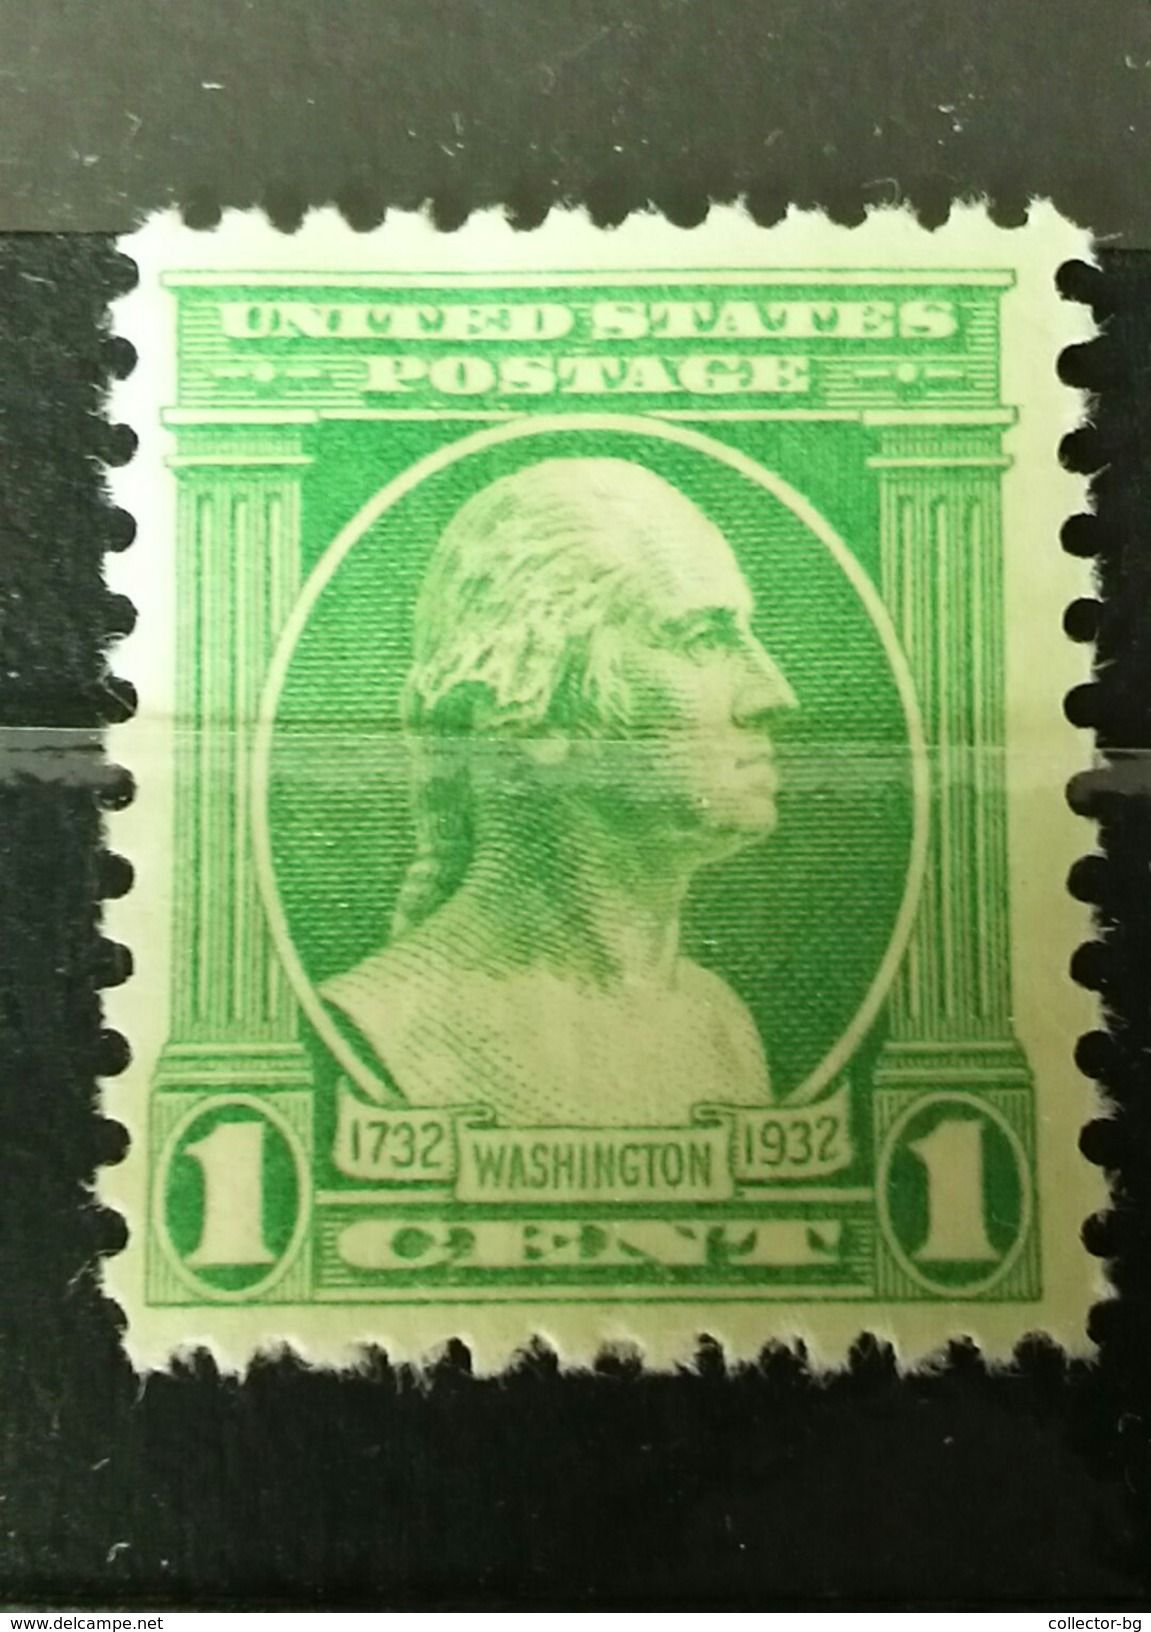 RARE 1 CENT US POSTAGE WASHINGTON 1732-1932 UNUSED/MINT/NEUF STAMP TIMBRE -  United States